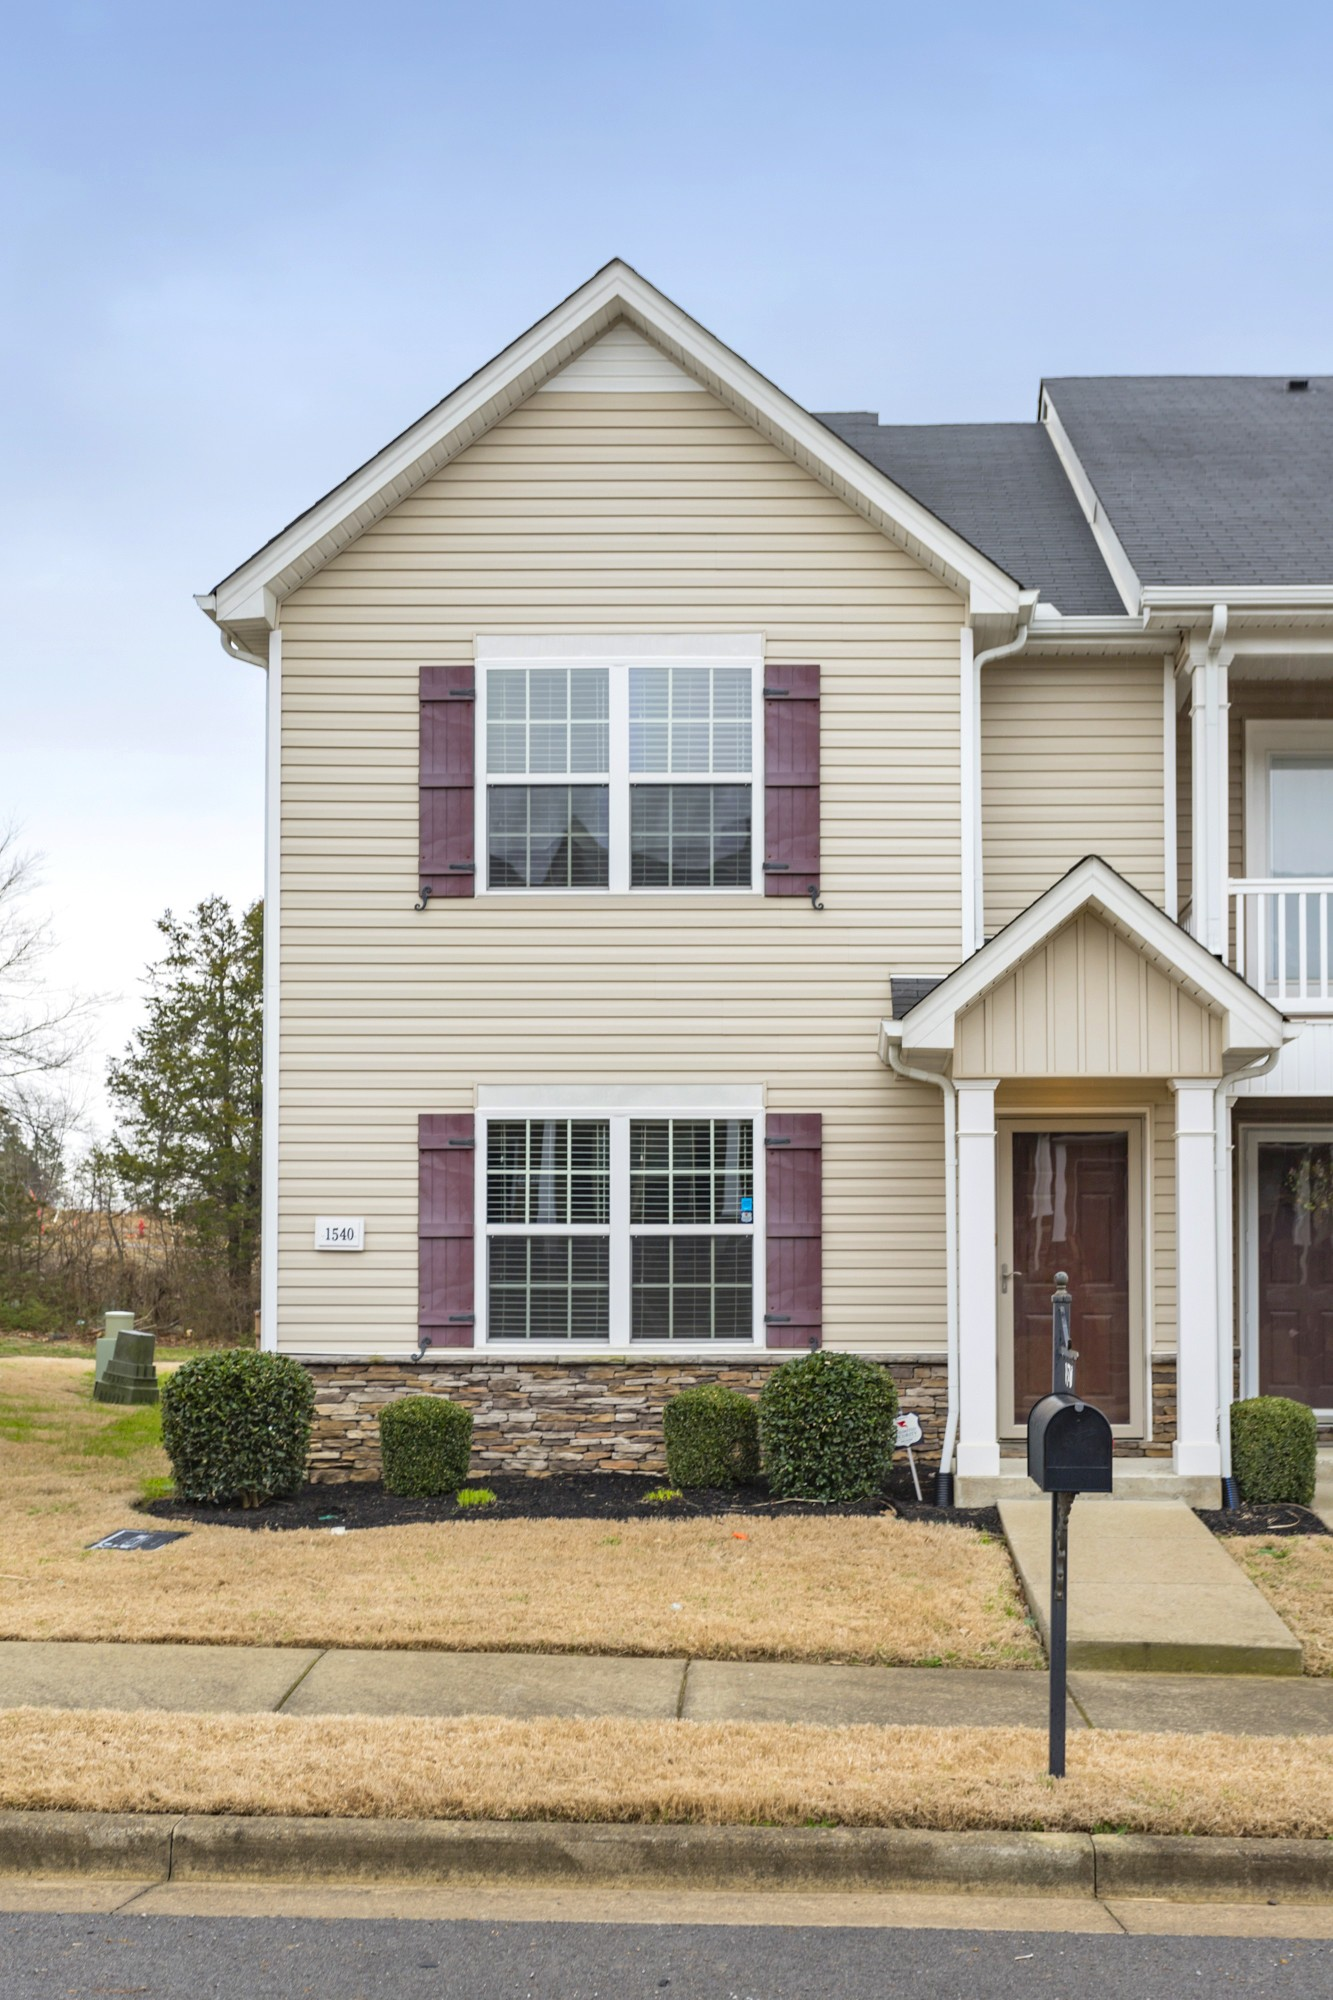 1540 Sprucedale Dr, Nashville-Antioch in Davidson County, TN County, TN 37013 Home for Sale